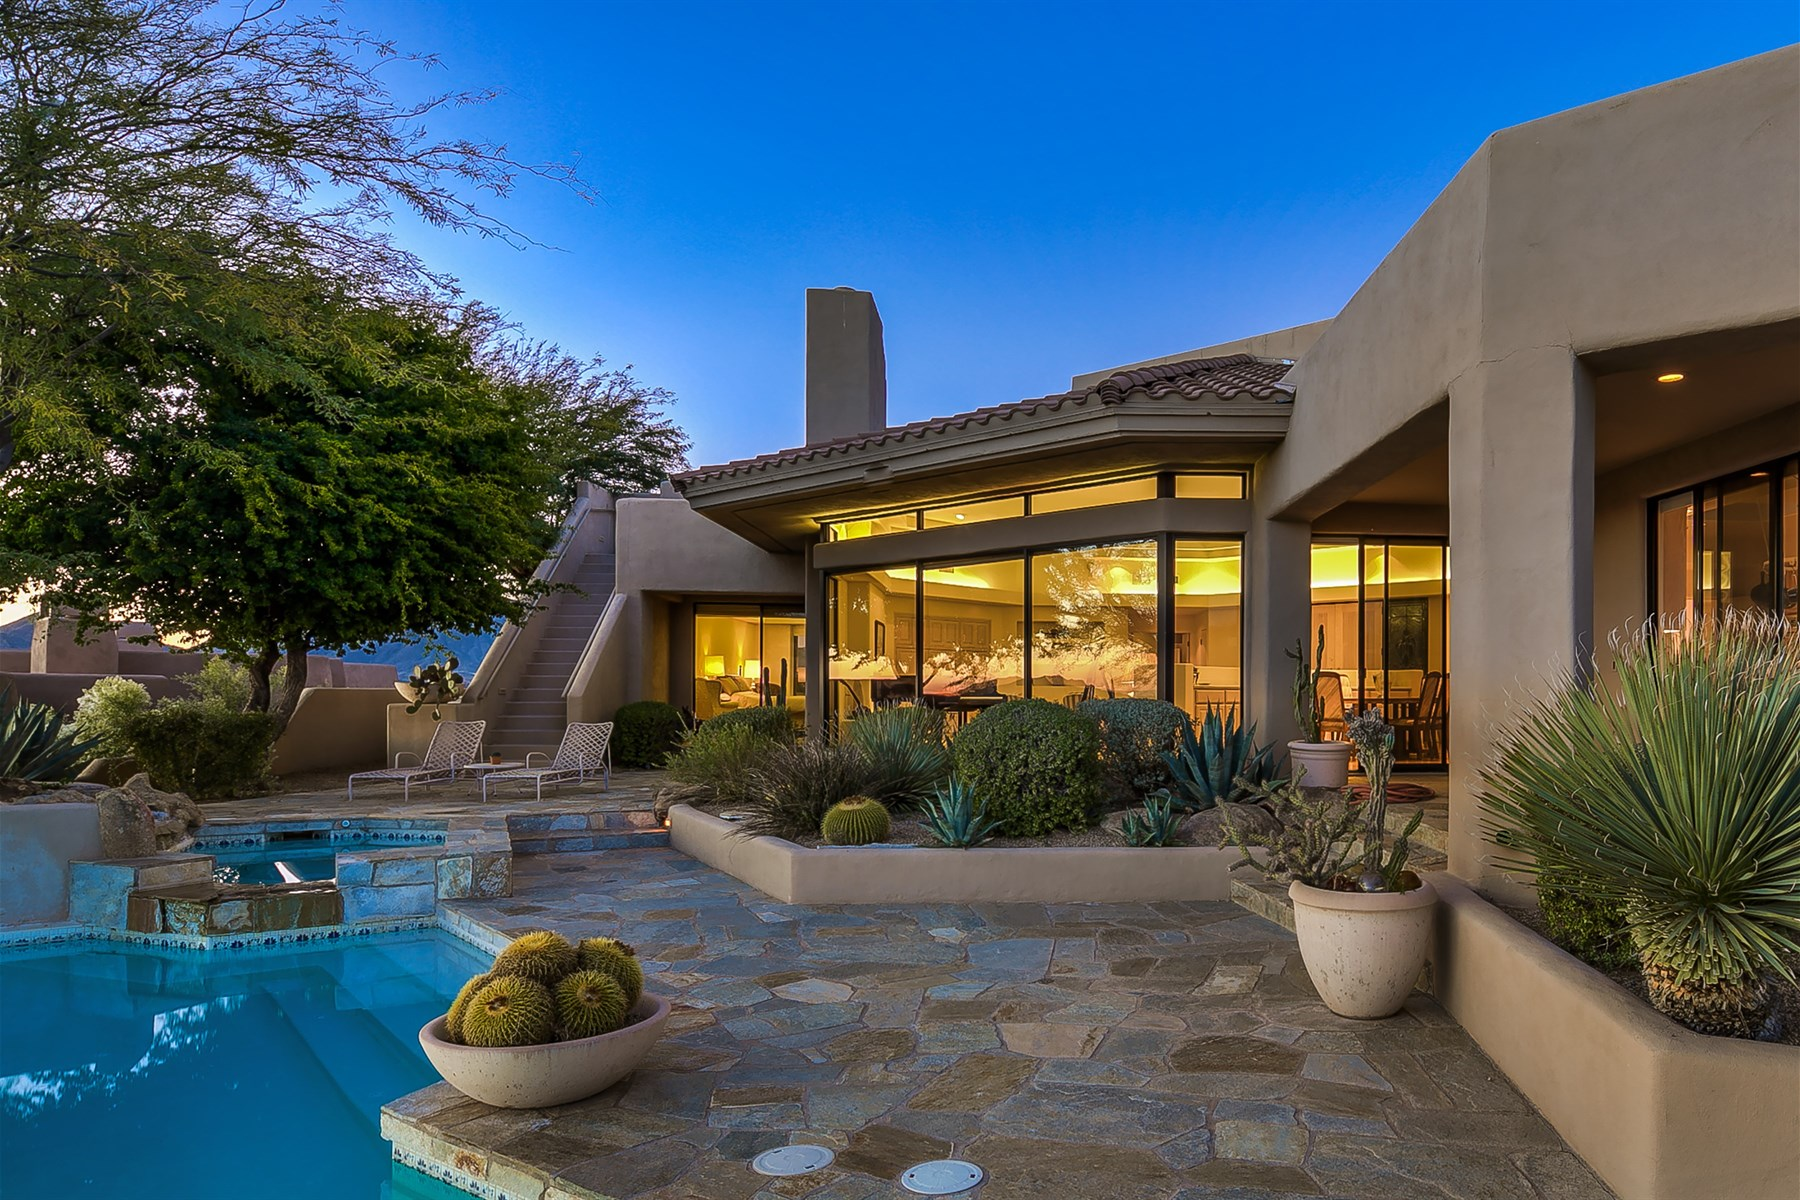 Single Family Home for Sale at Bright and open custom abounds with beautiful views 10665 E Palo Brea Dr Scottsdale, Arizona, 85262 United States